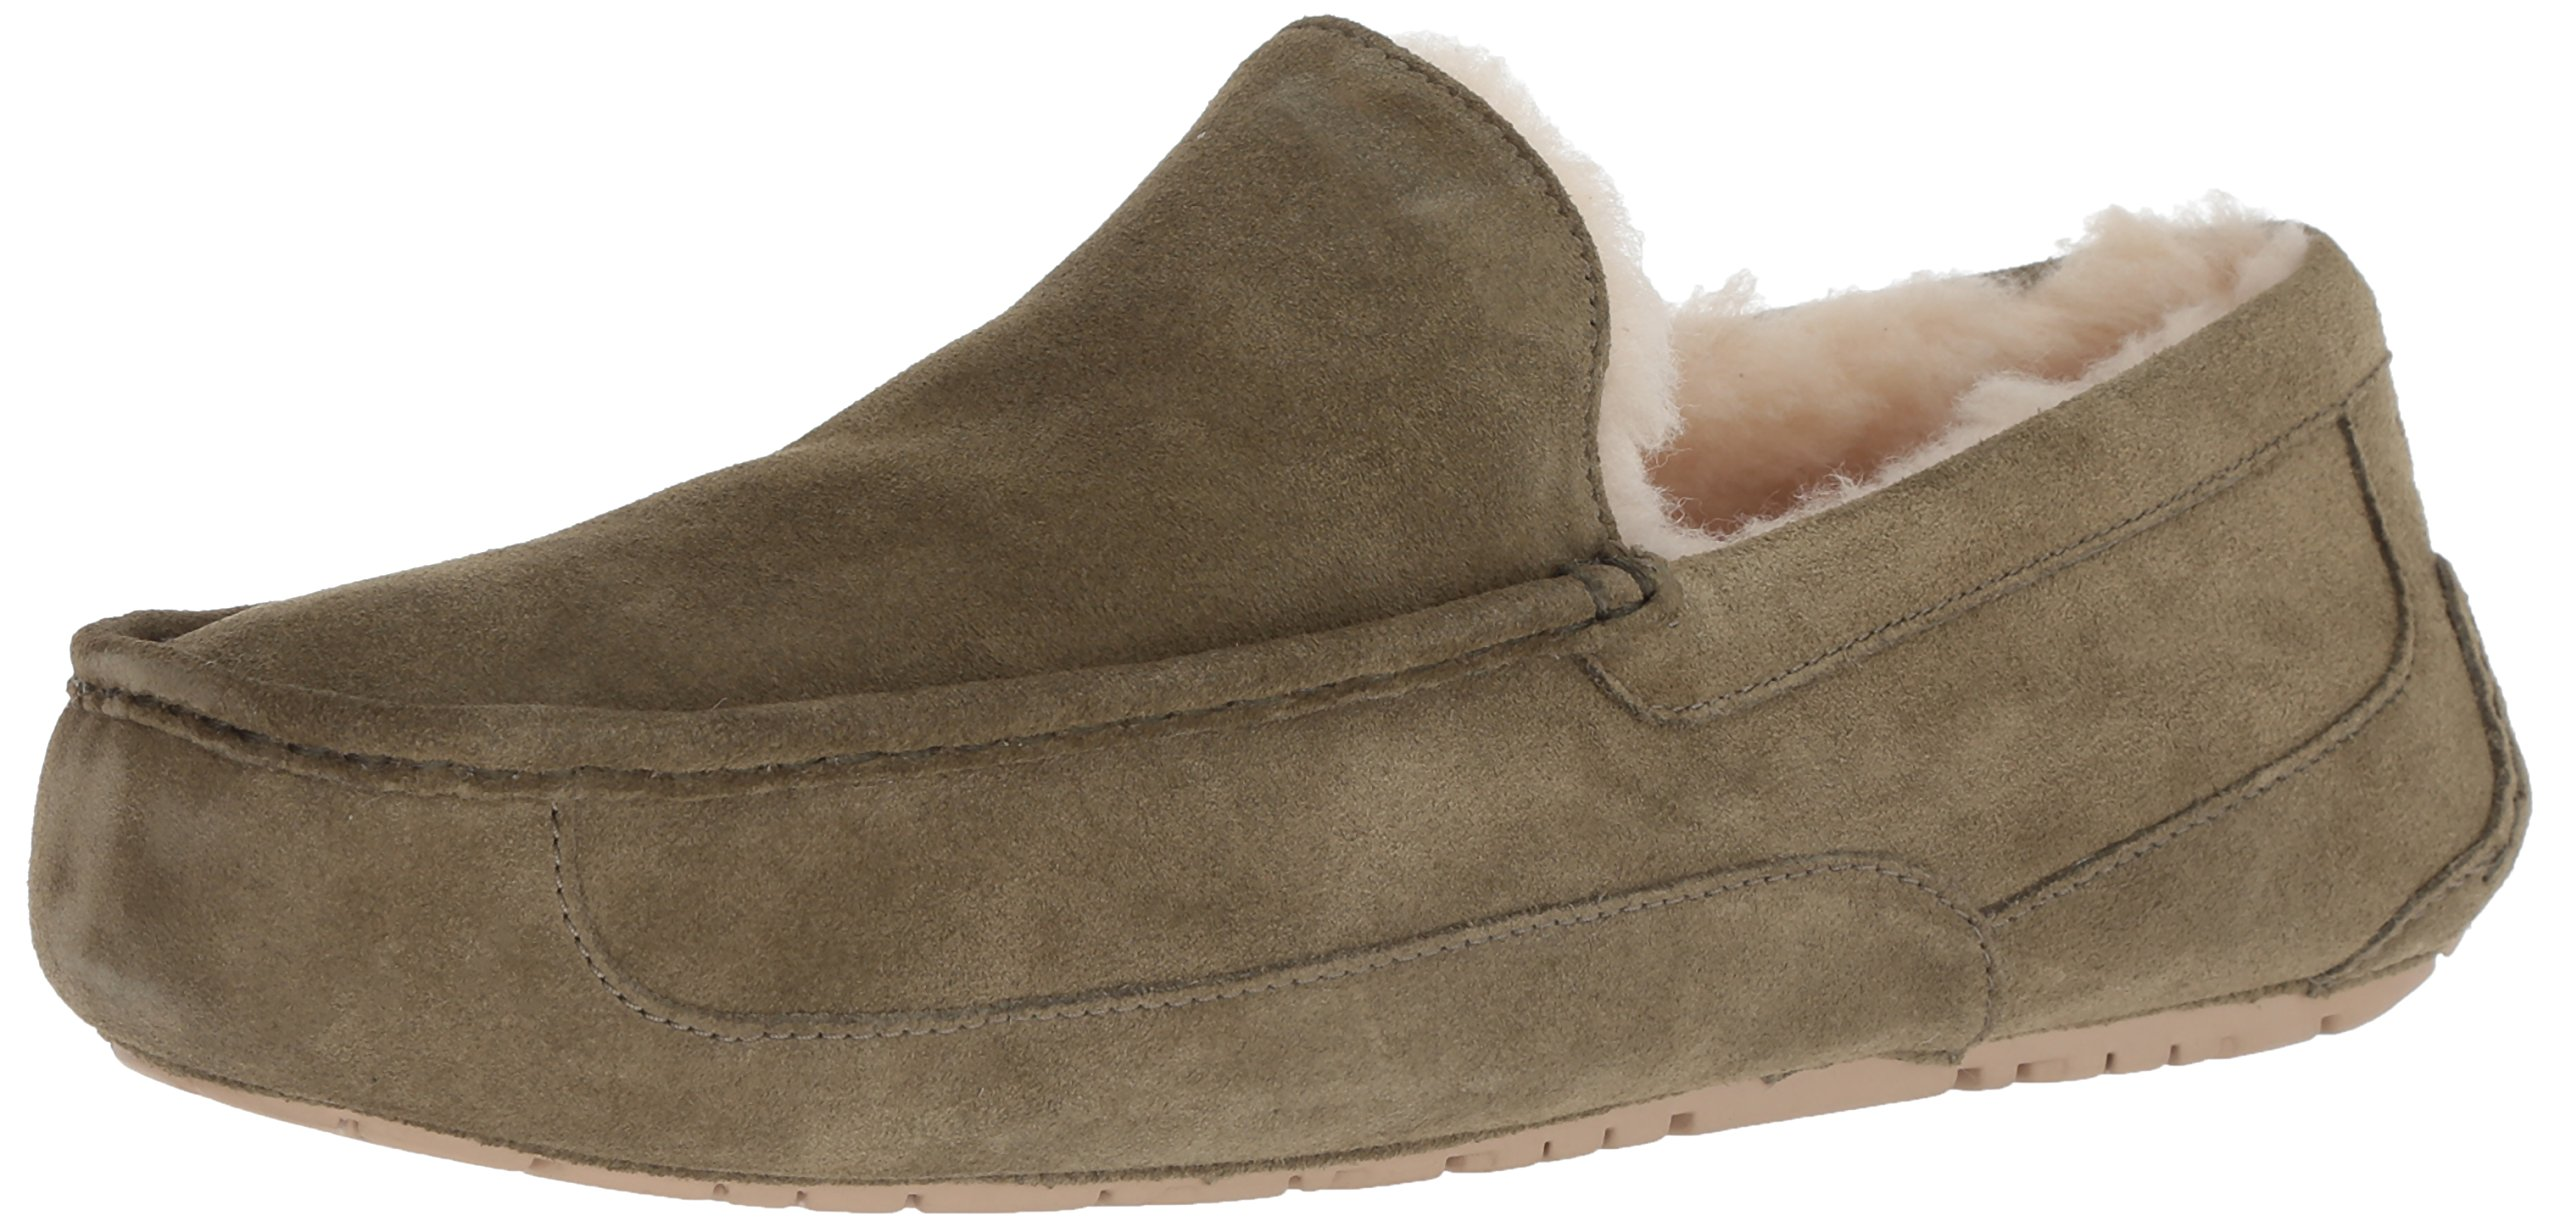 UGG Men's Ascot Slipper, Moss Green, 08 M US